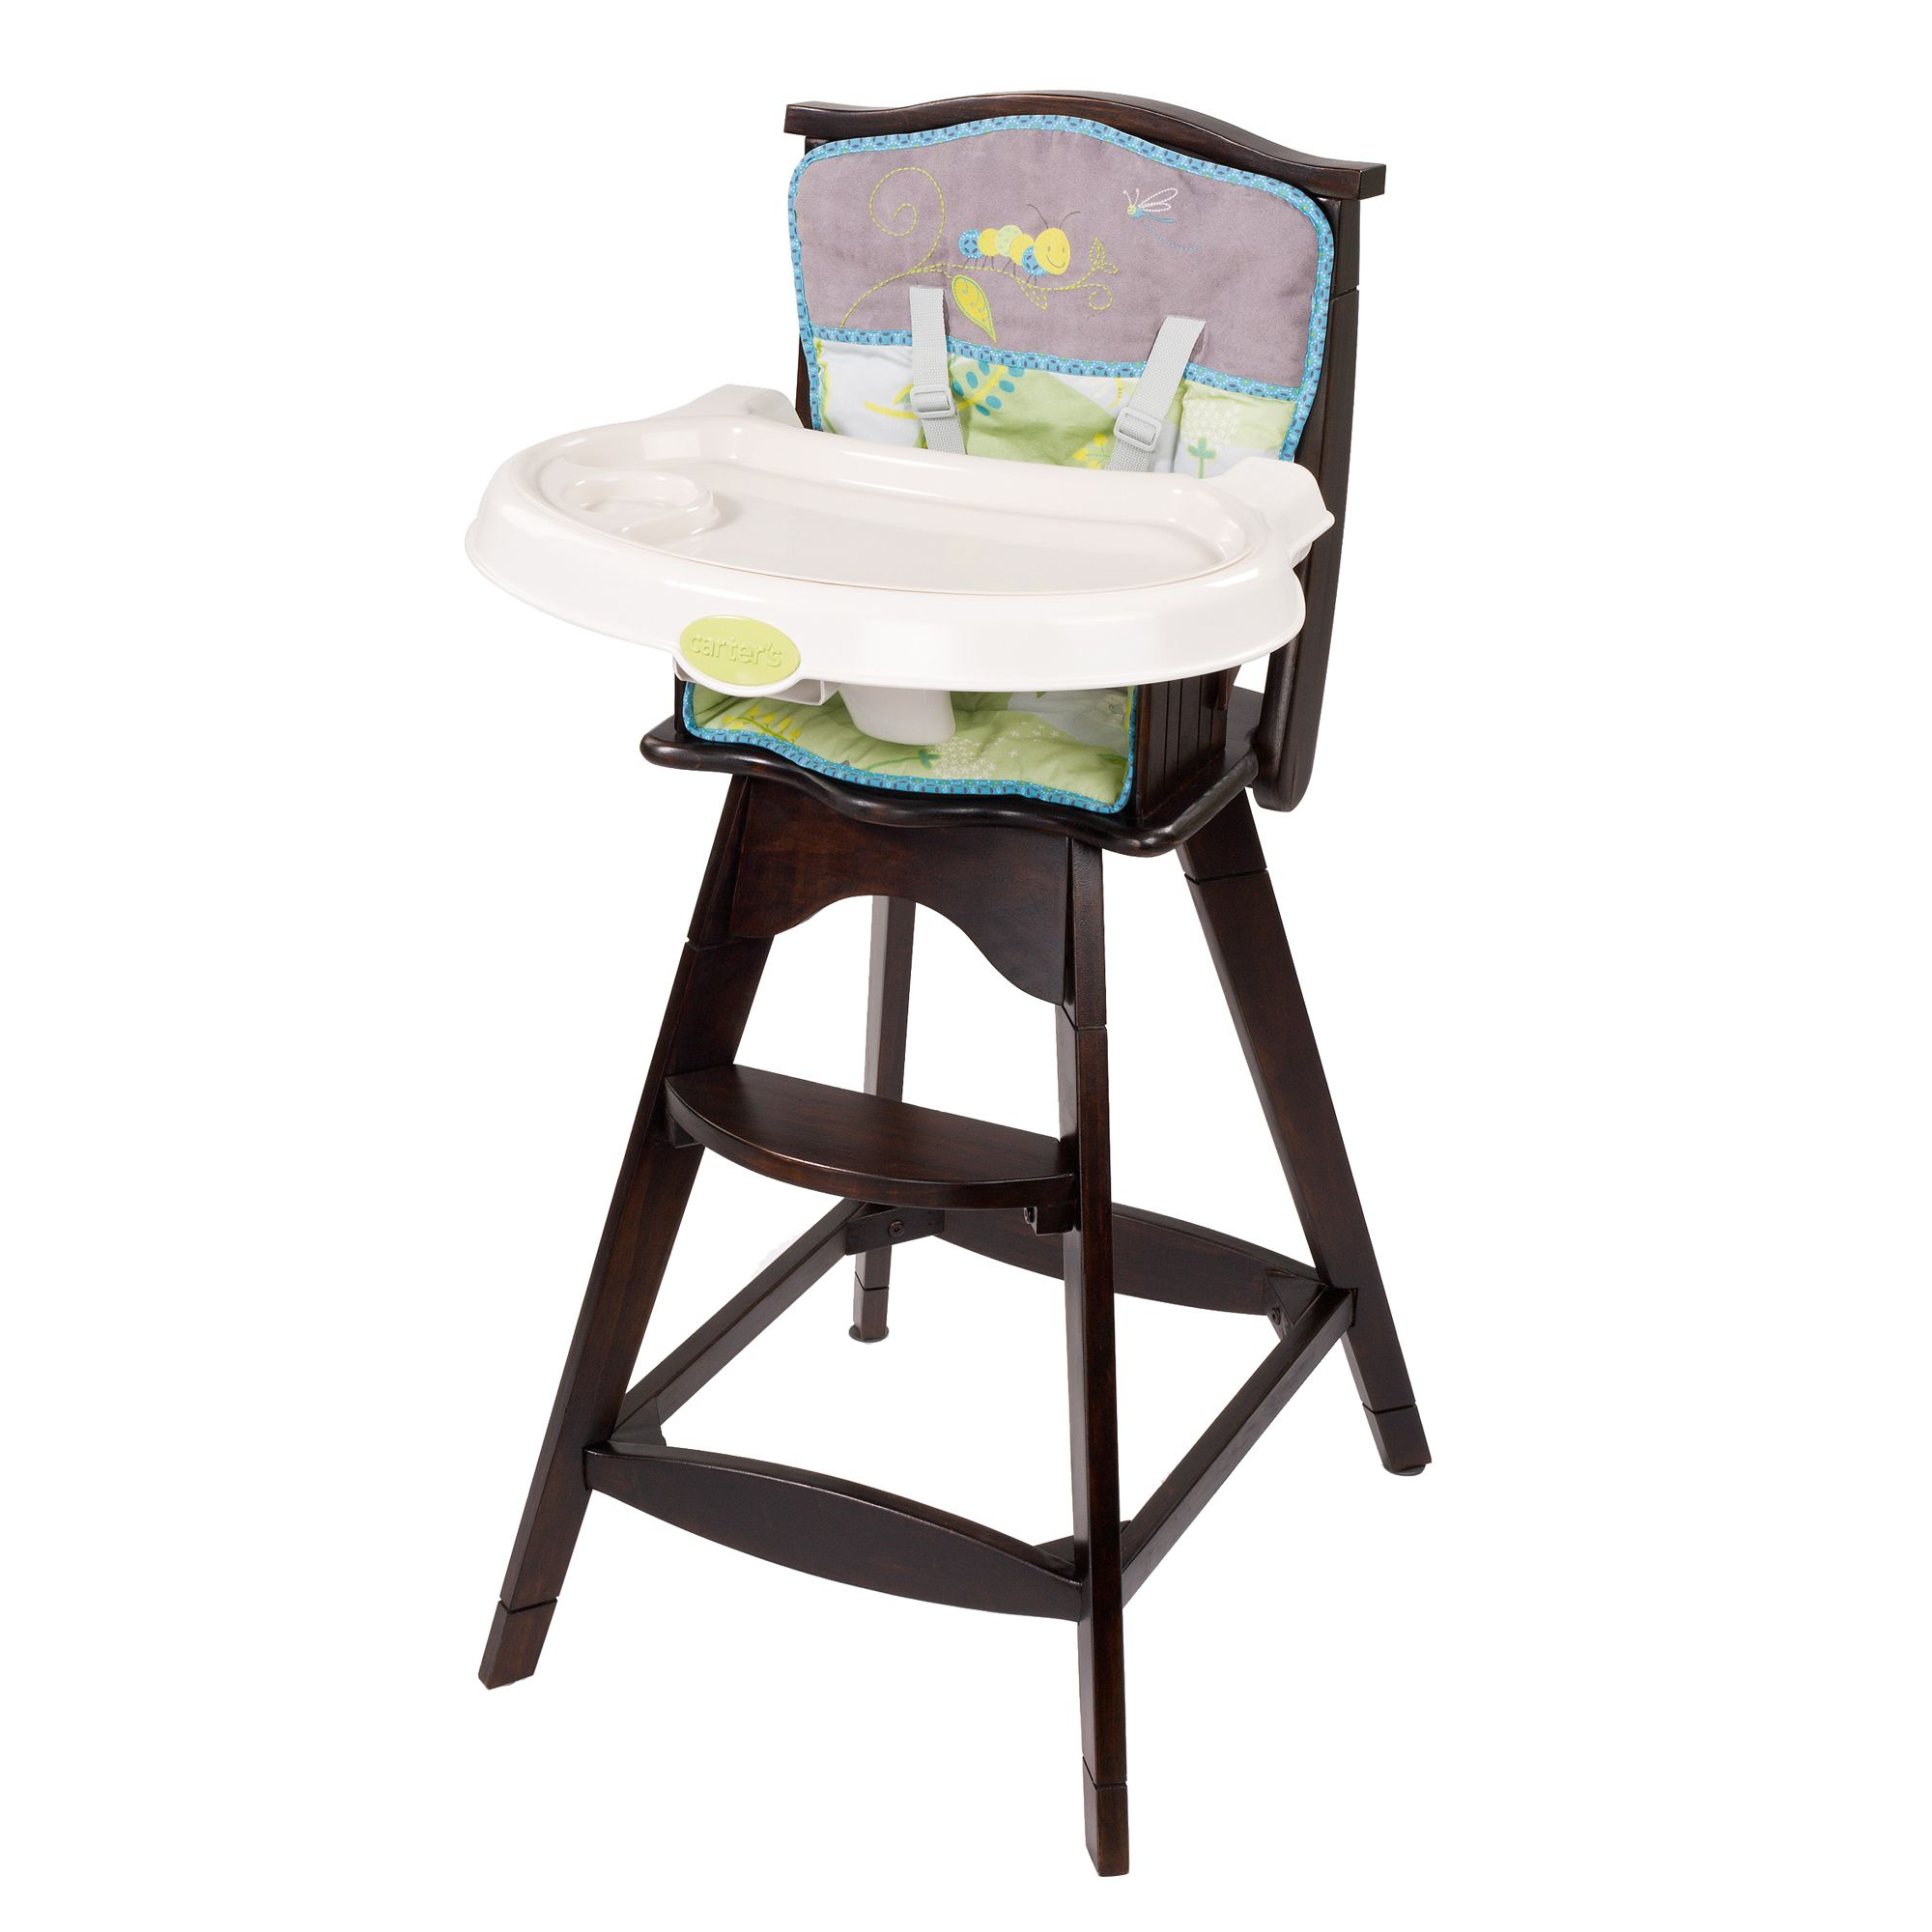 carter high chair replacement parts cathedral chairs for sale s classic comfort reclining wood